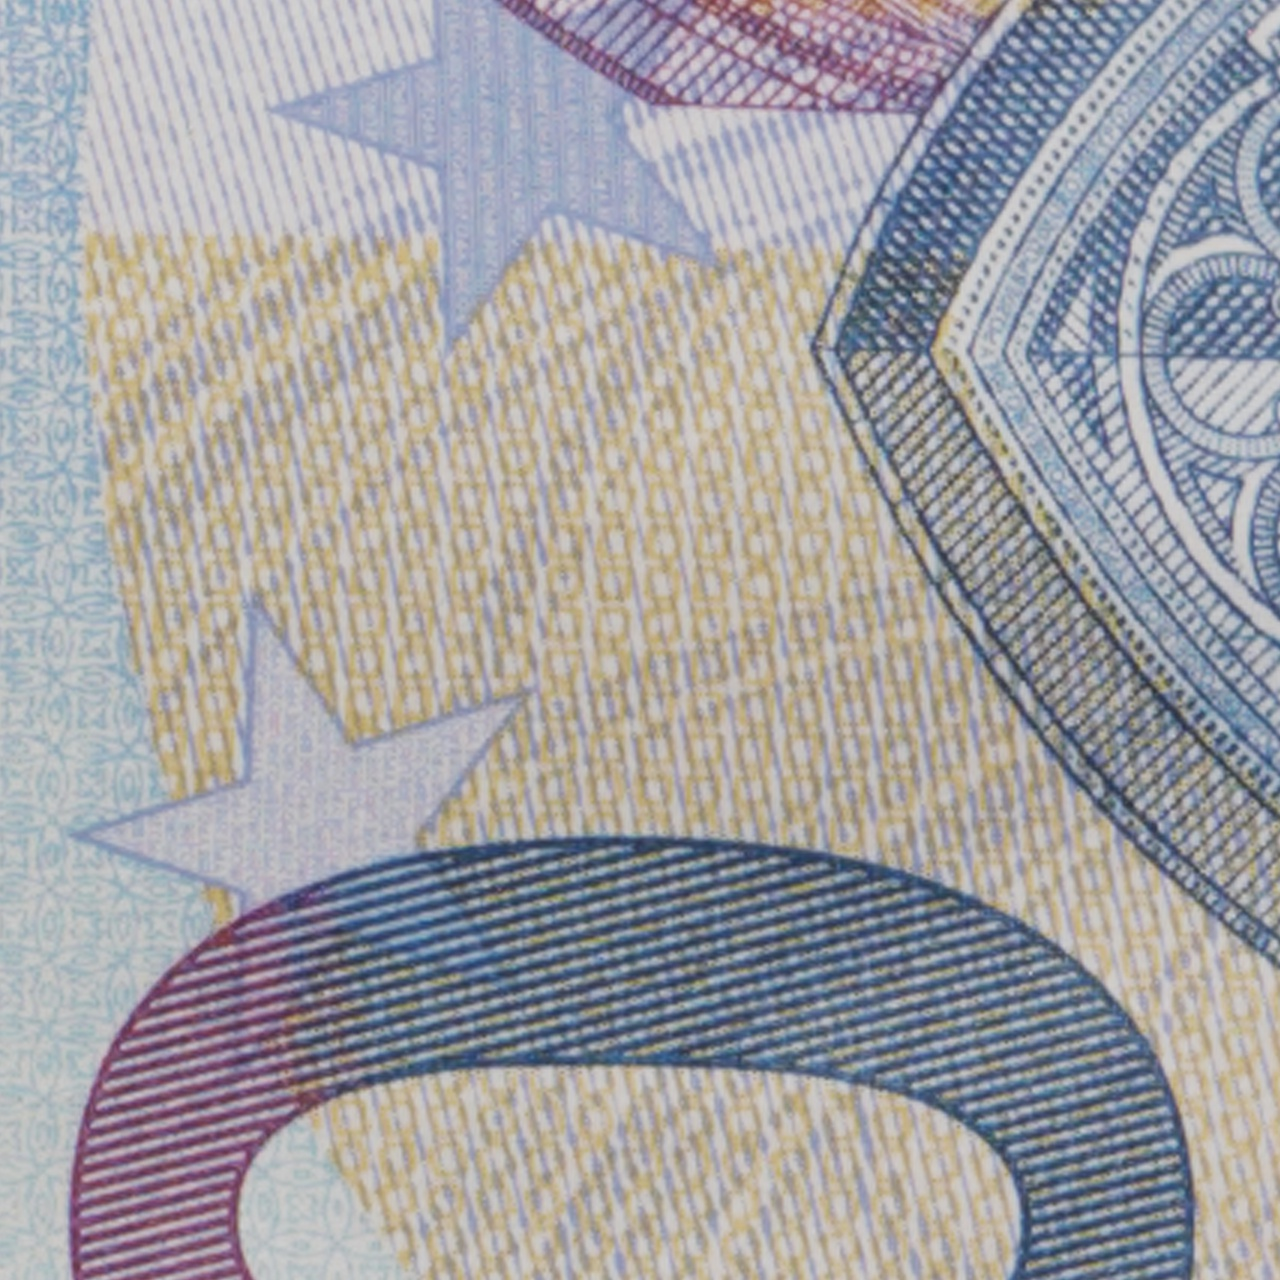 Euro_Banknotes_Detail_closer_DNG.jpg